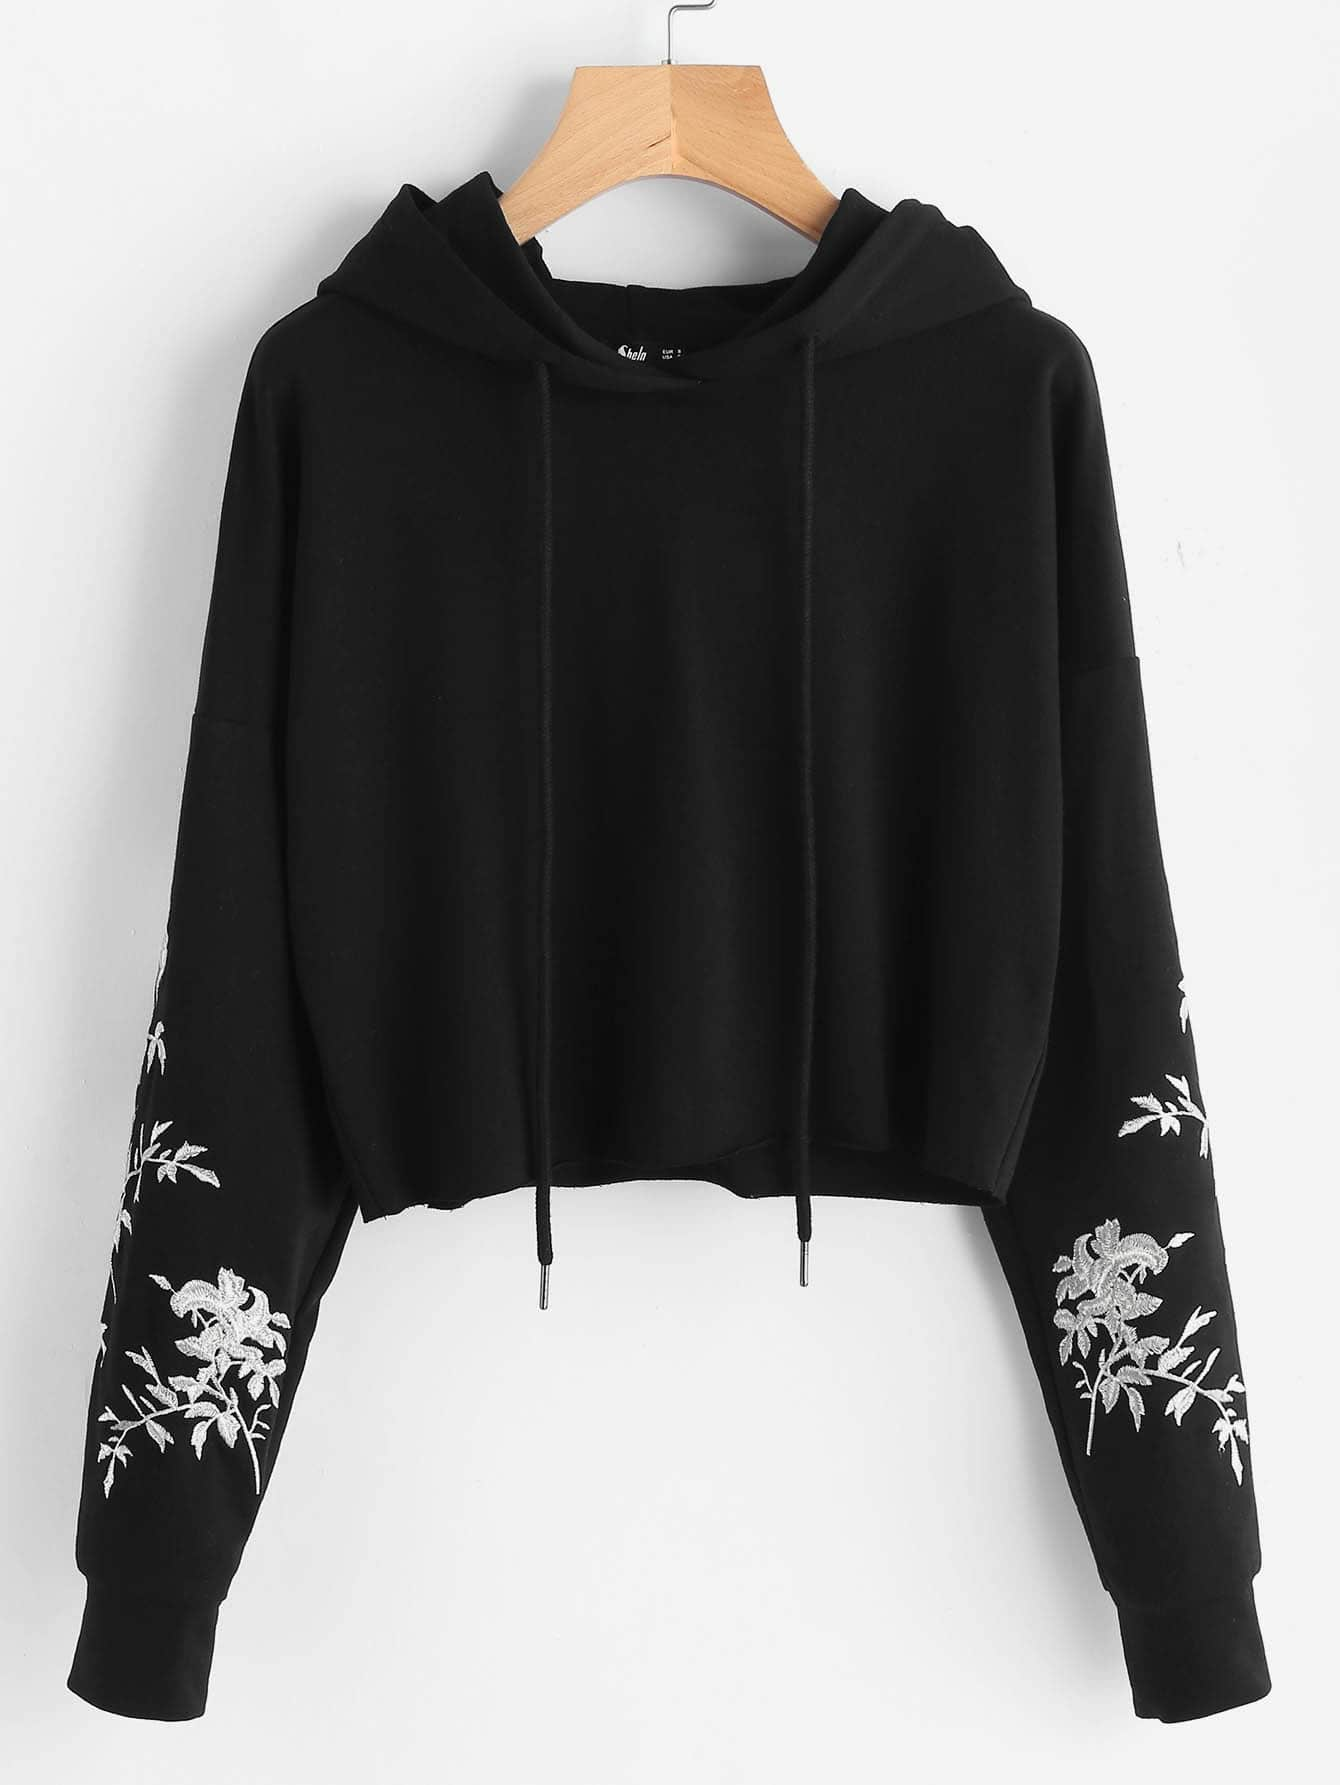 Drop Shoulder Raw Hem Embroidered Hoodie embroidered flower patch raw hem hoodie